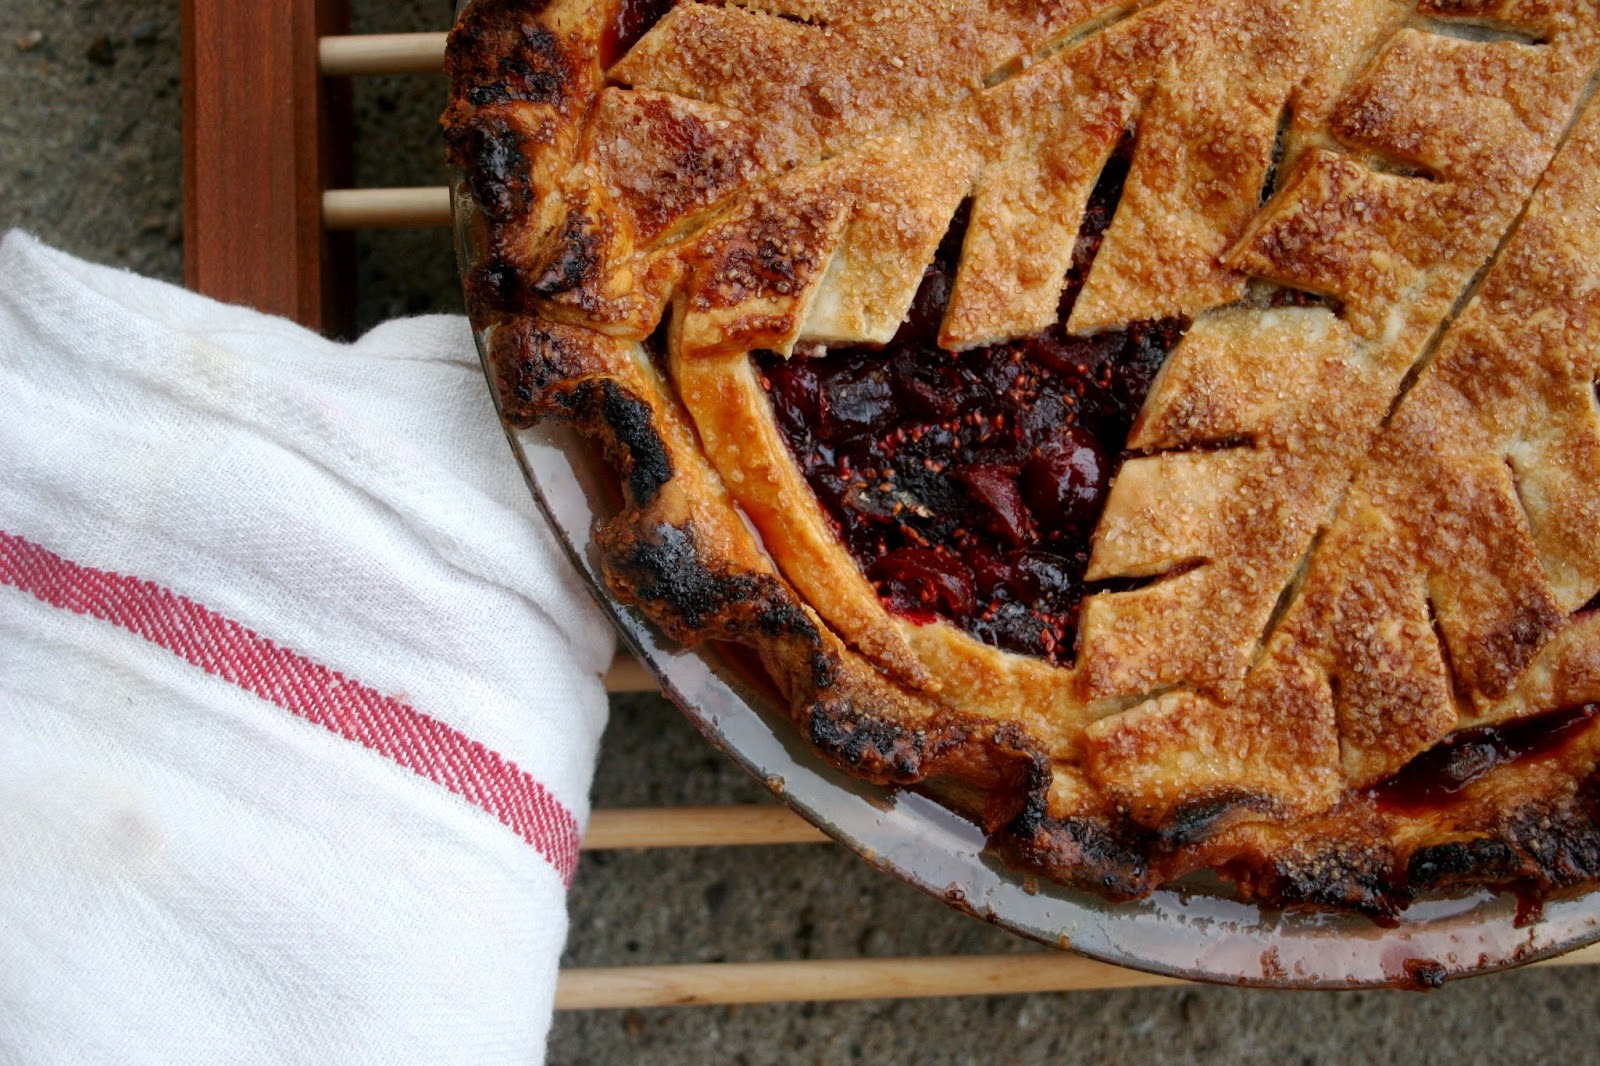 Cranberry Pie with Decorated Crust, Close-Up